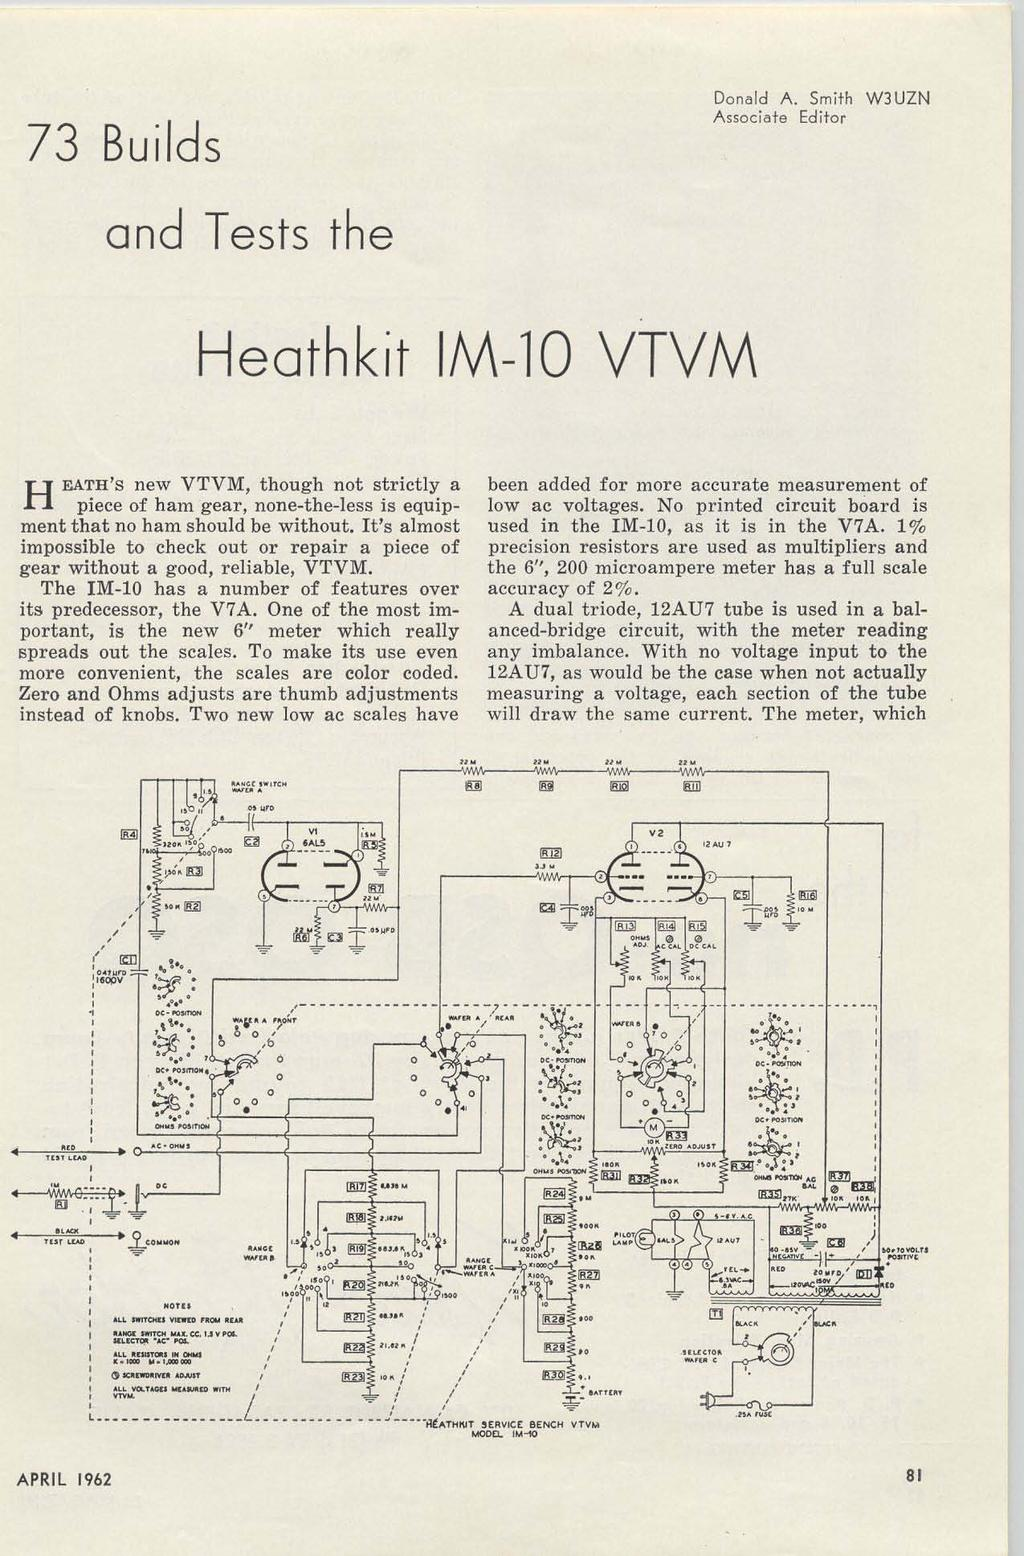 I Ateur 6m Ssb Xmtr Accurate S Meter 40m Zl Special Over 20 Live Line Detectorindicator Circuit Schematic 73 Builds Dona Ld A Smith W3uzn Associate Editor And Tests The Heathkit M